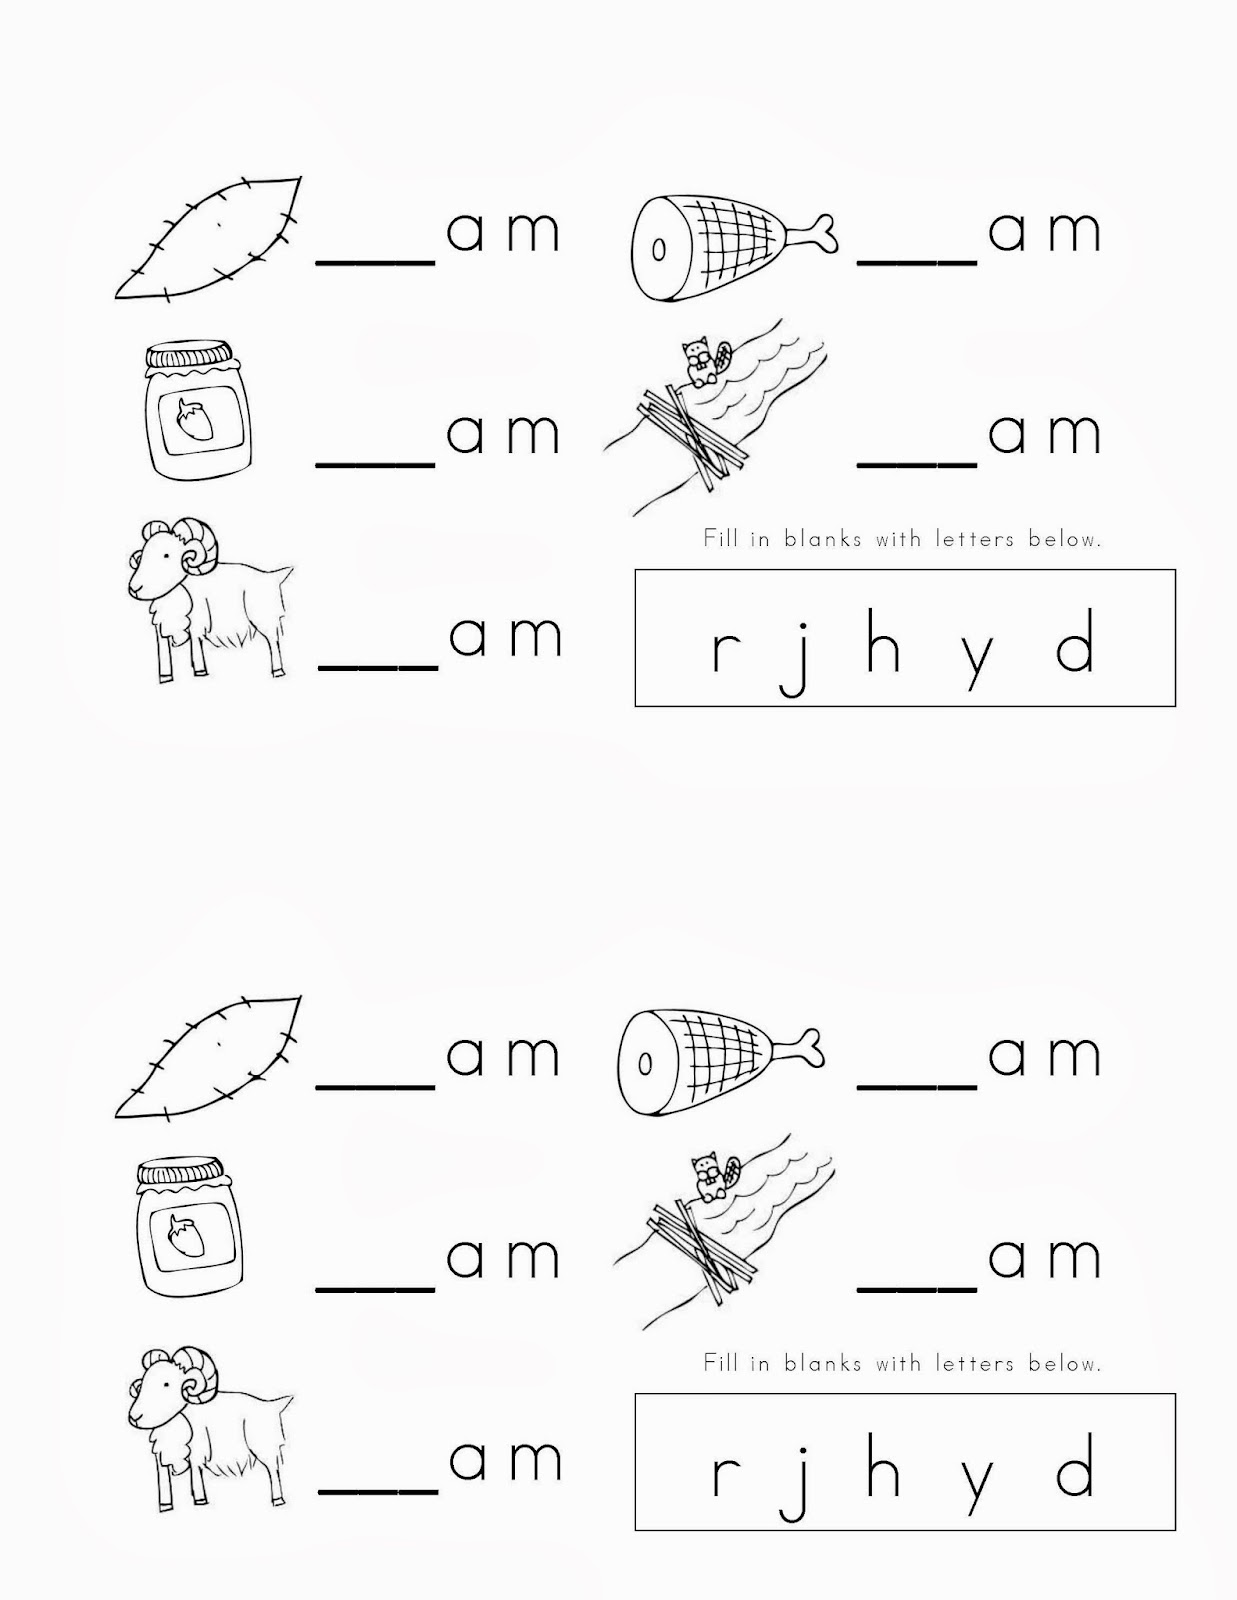 Lauren Brownlie Illustration Educational Worksheets